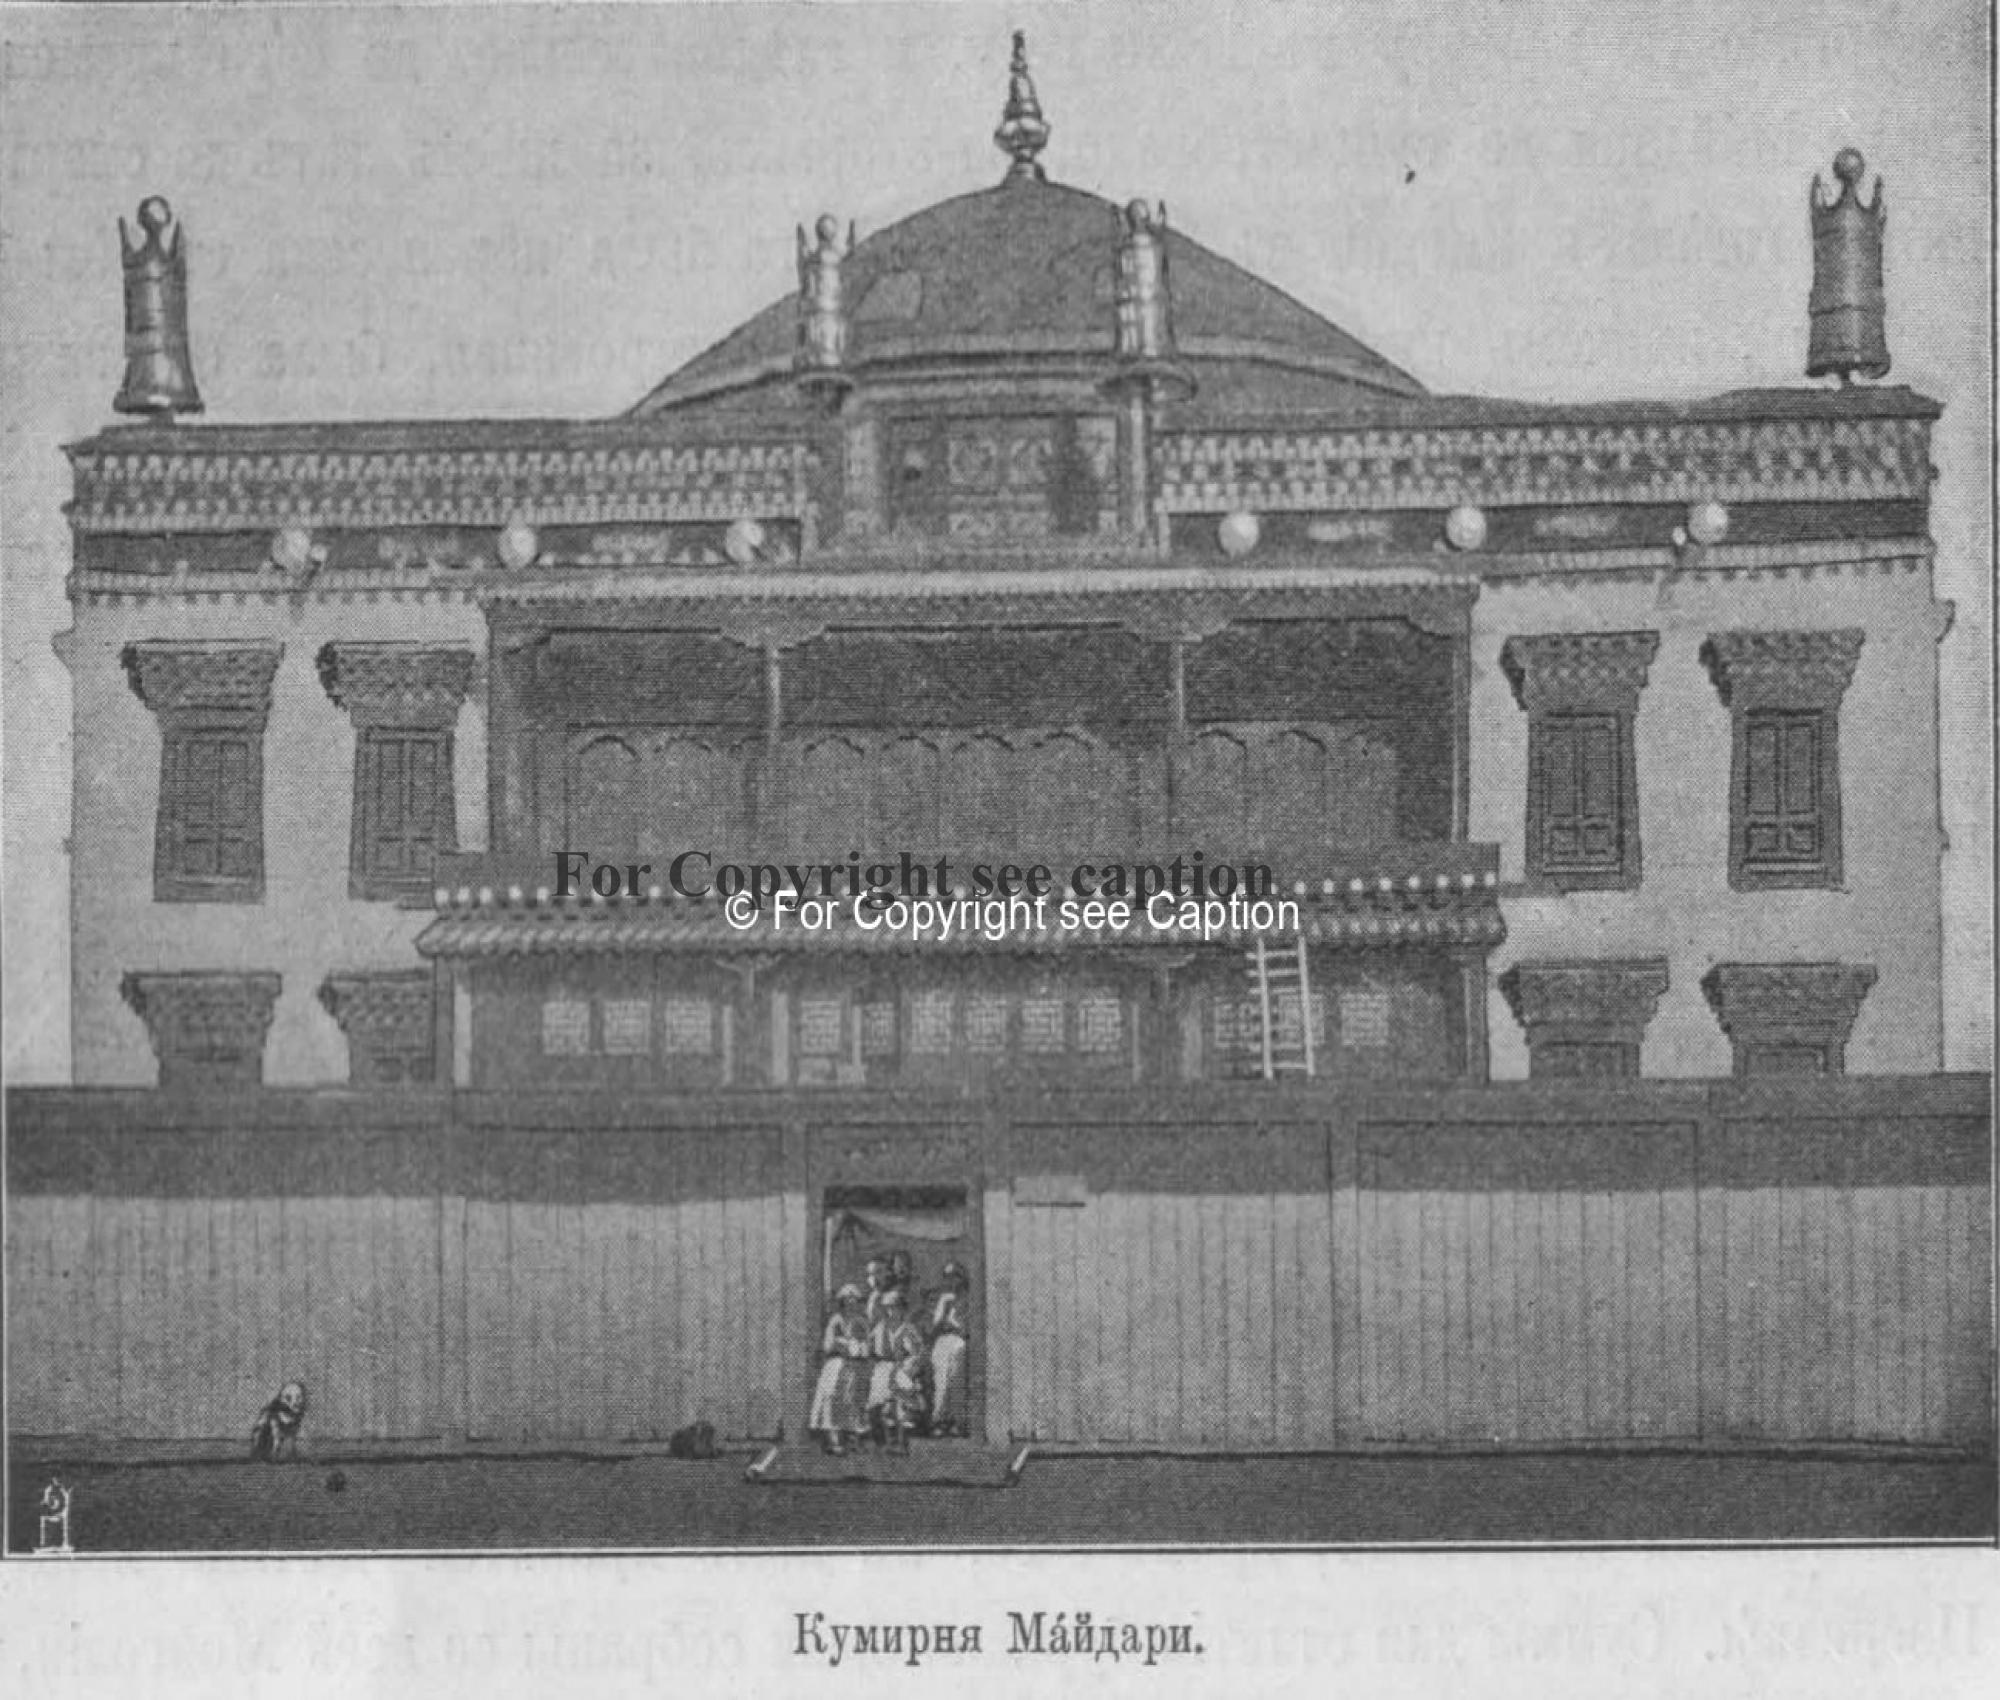 Maitreya temple. Pozdneev, A. M., Mongolija i Mongoly. T. 1. Sankt-Peterburg 1896 (photo taken in 18